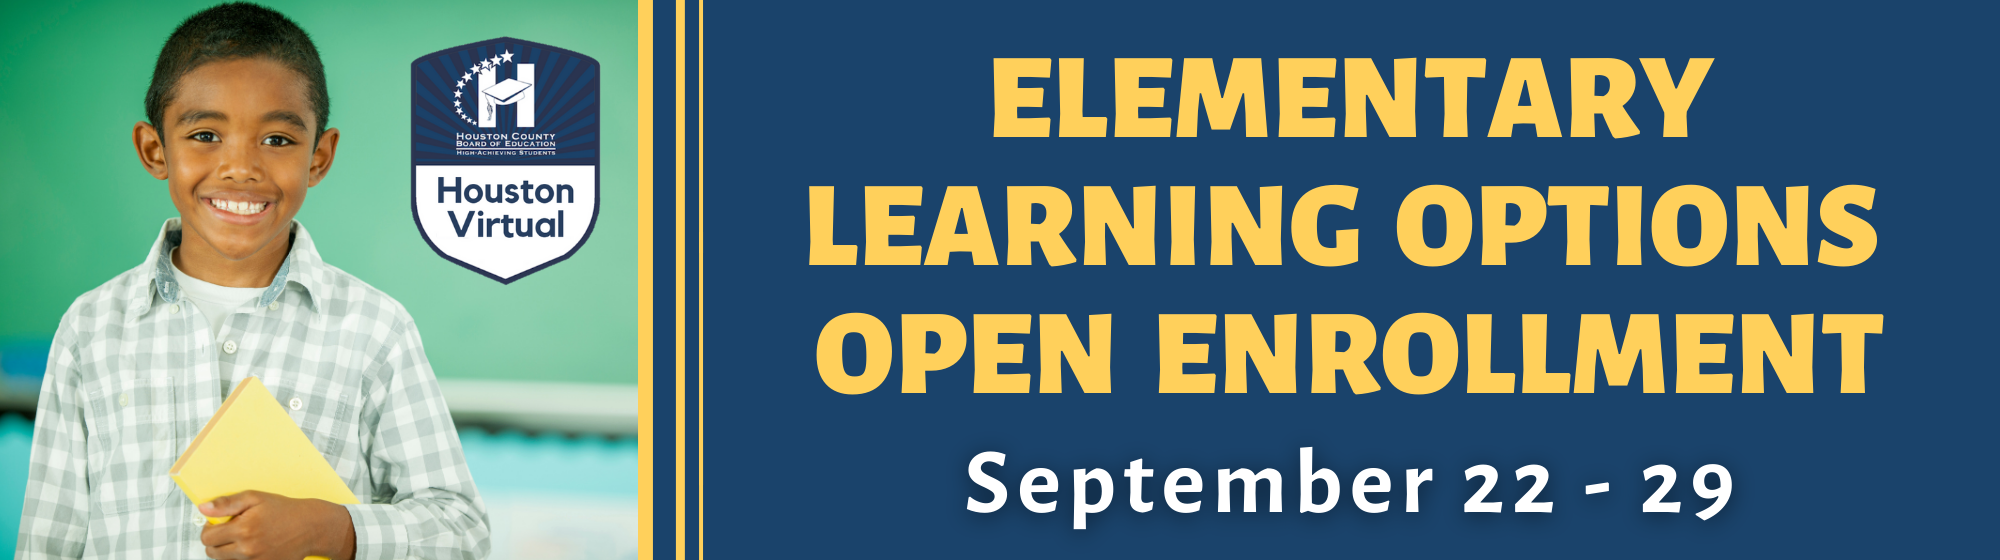 Elementary Learning Options Open Enrollment